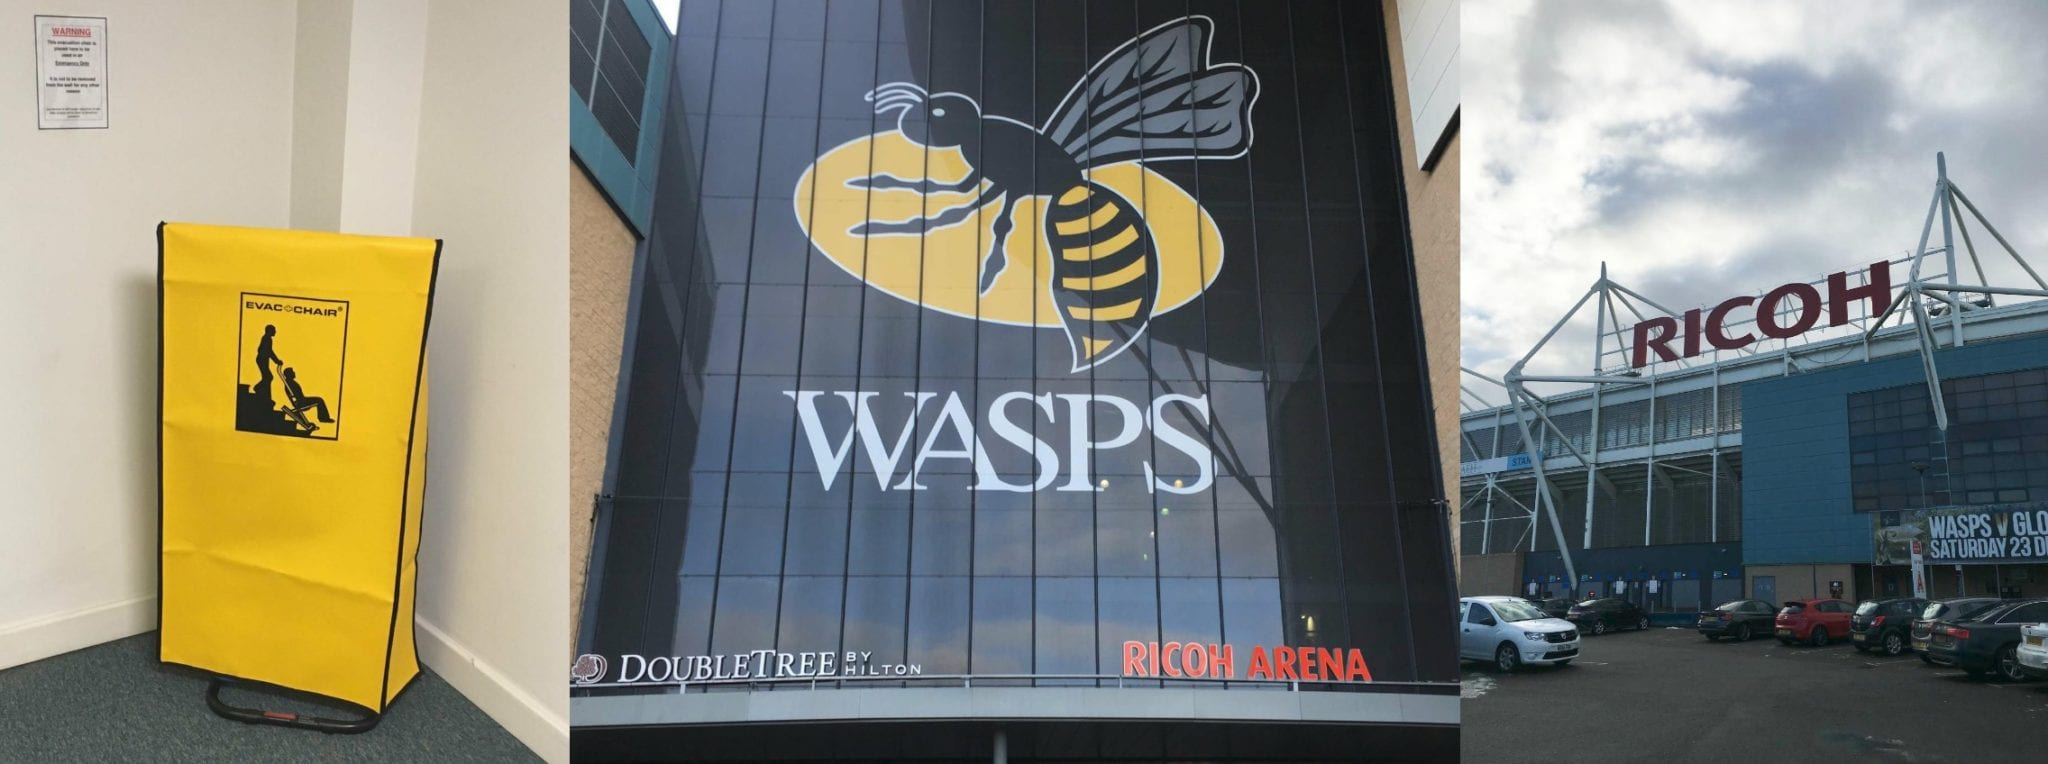 Wasps Rugby Club updates their emergency evacuation equipment